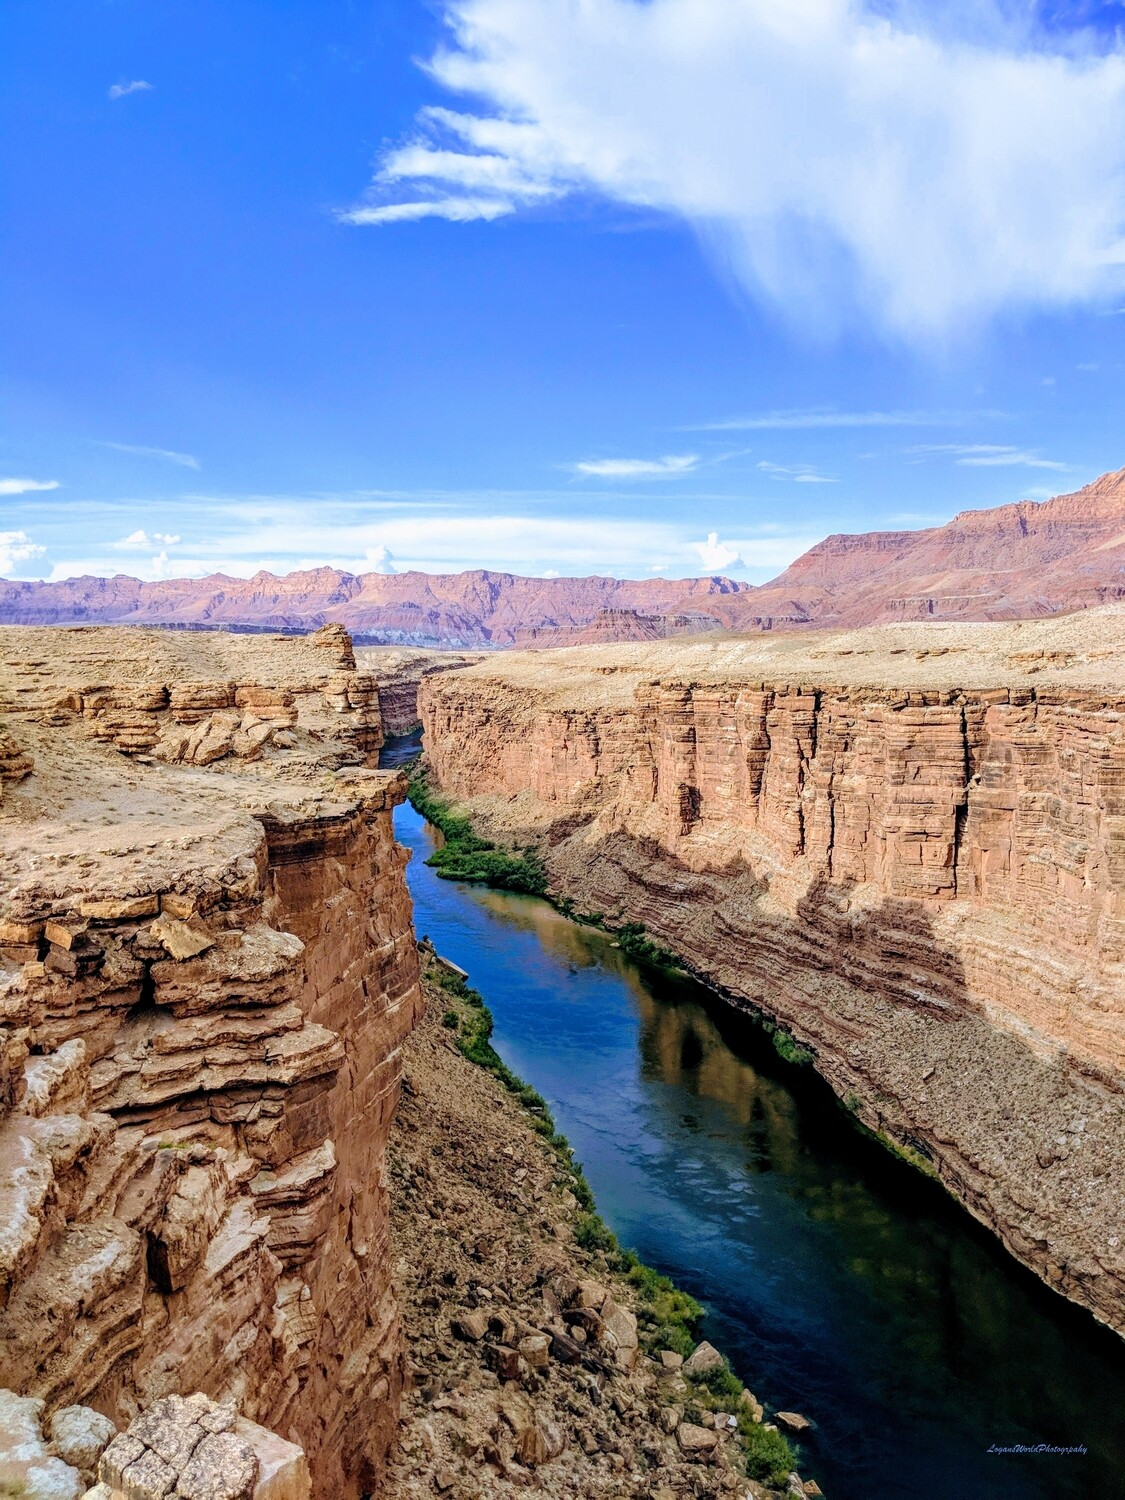 "Colorado River 9"" x 12"" Photo Print"